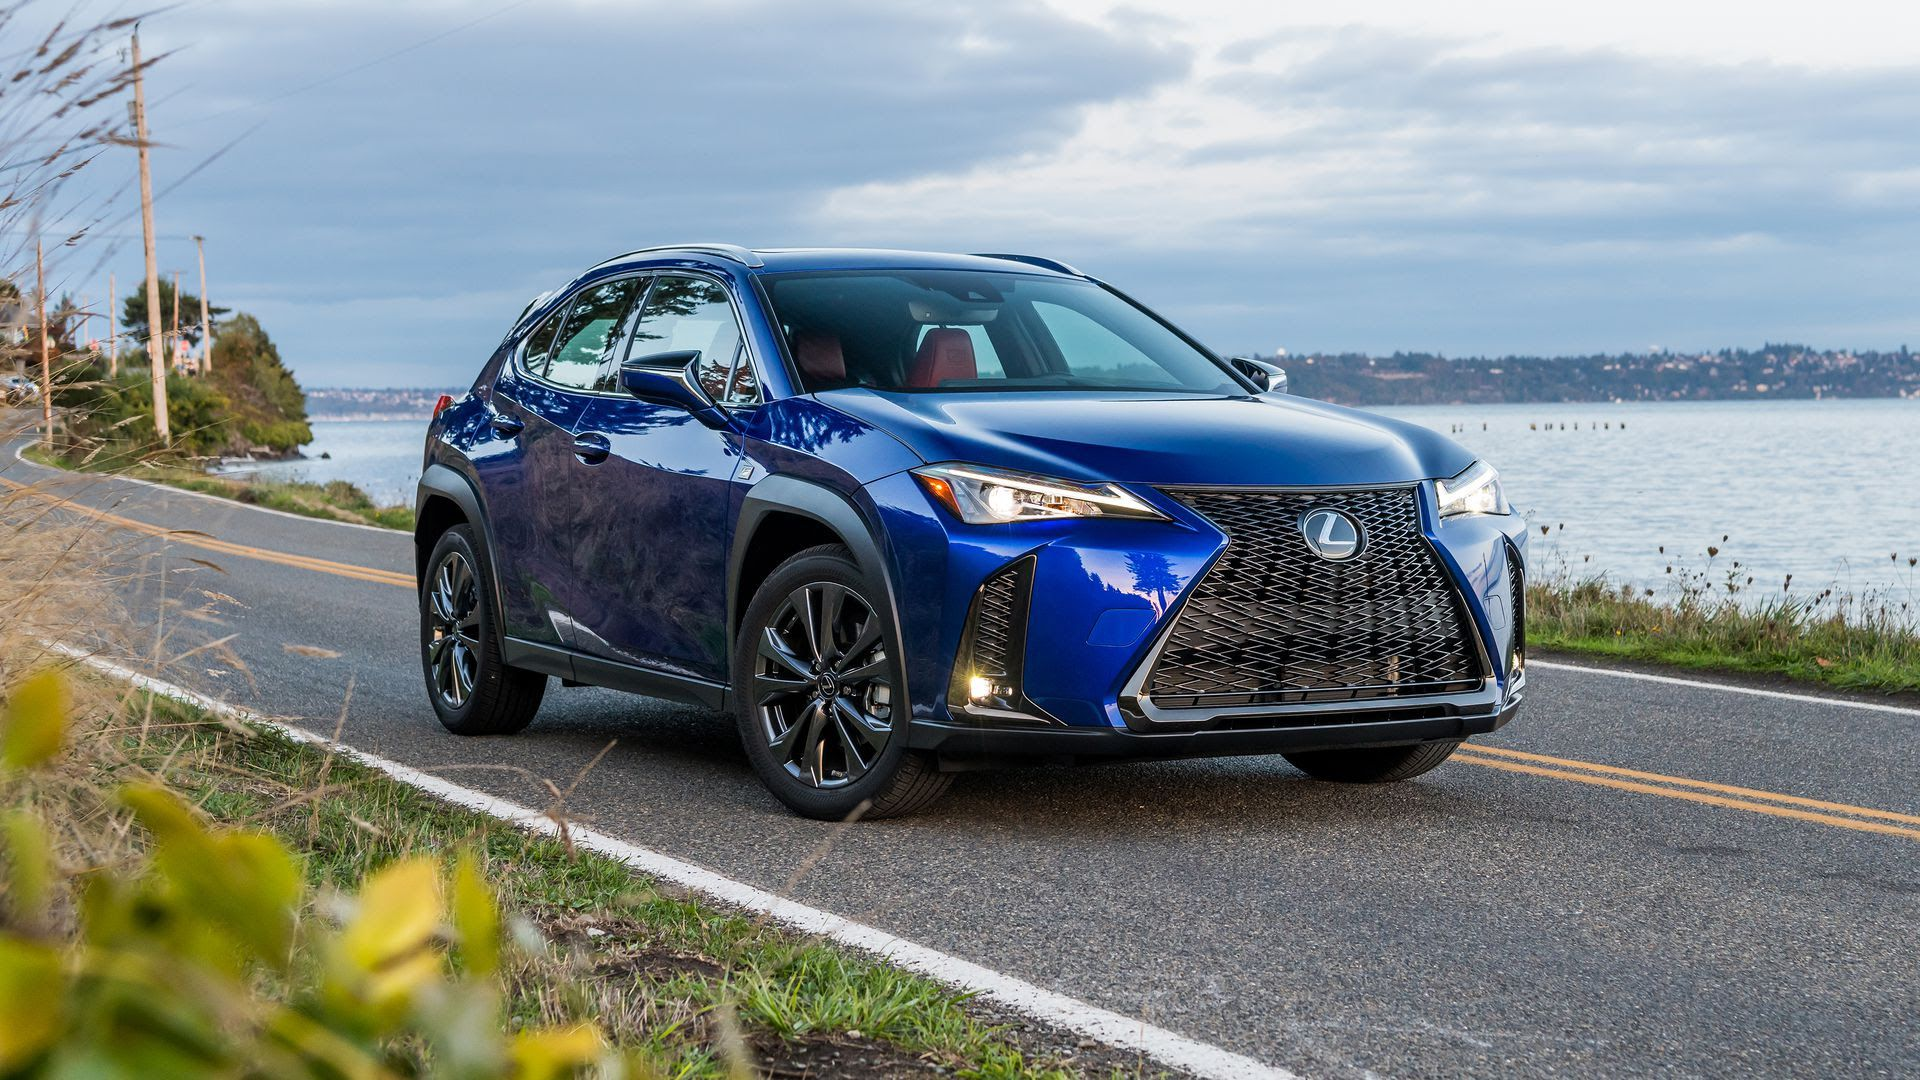 What we're driving: Lexus UX 250 F-Sport - Axios